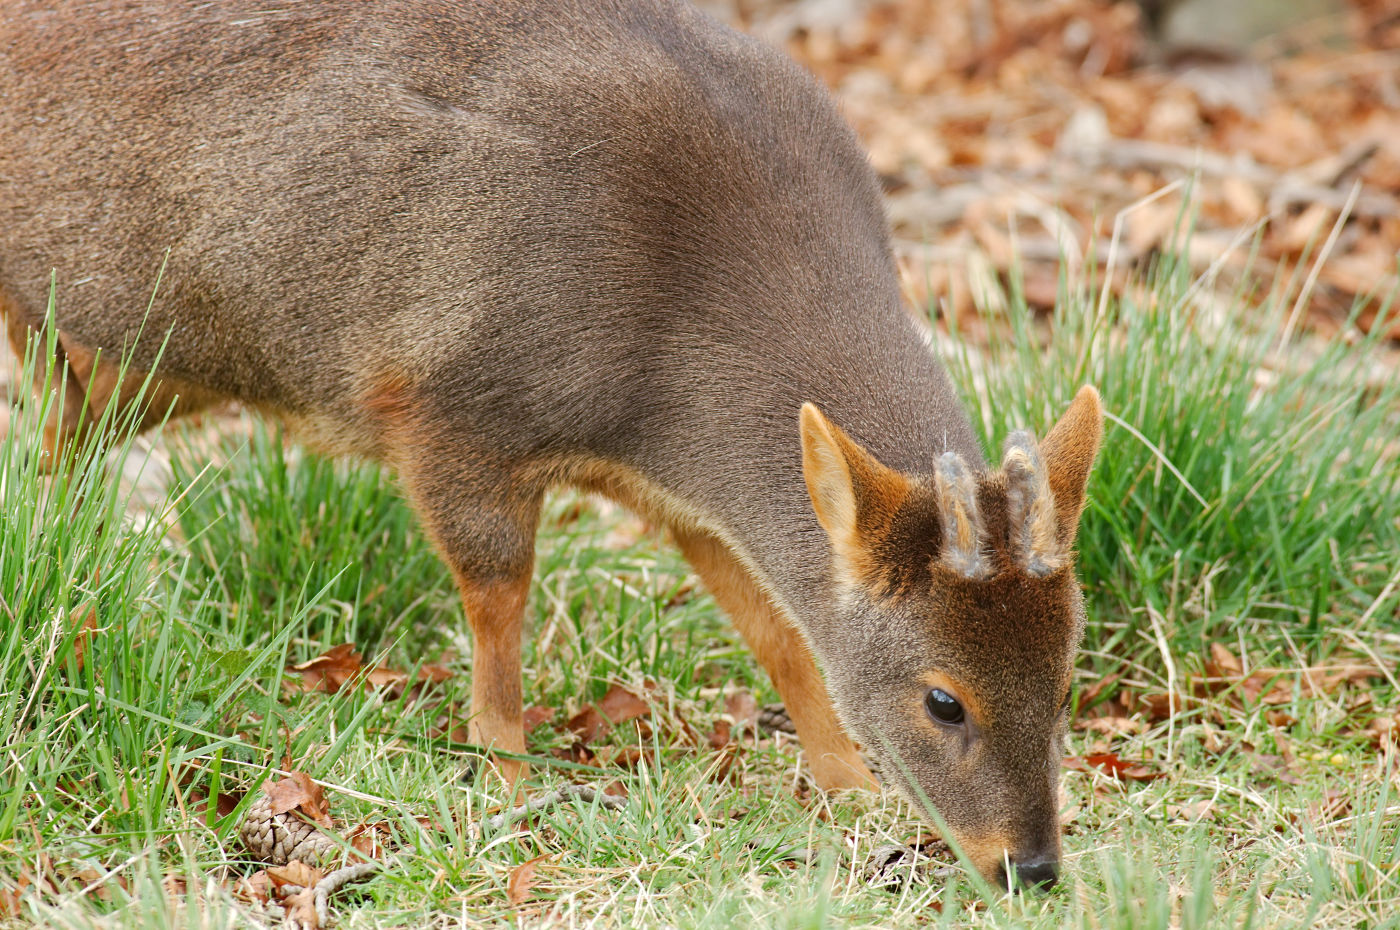 While travelling to southern Chile, keep your Swarovski Optik binoculars at the ready for the diminutive Chilean pudú deer, which measures in at around 40 centimetres tall, making it one of the world's smallest deer.